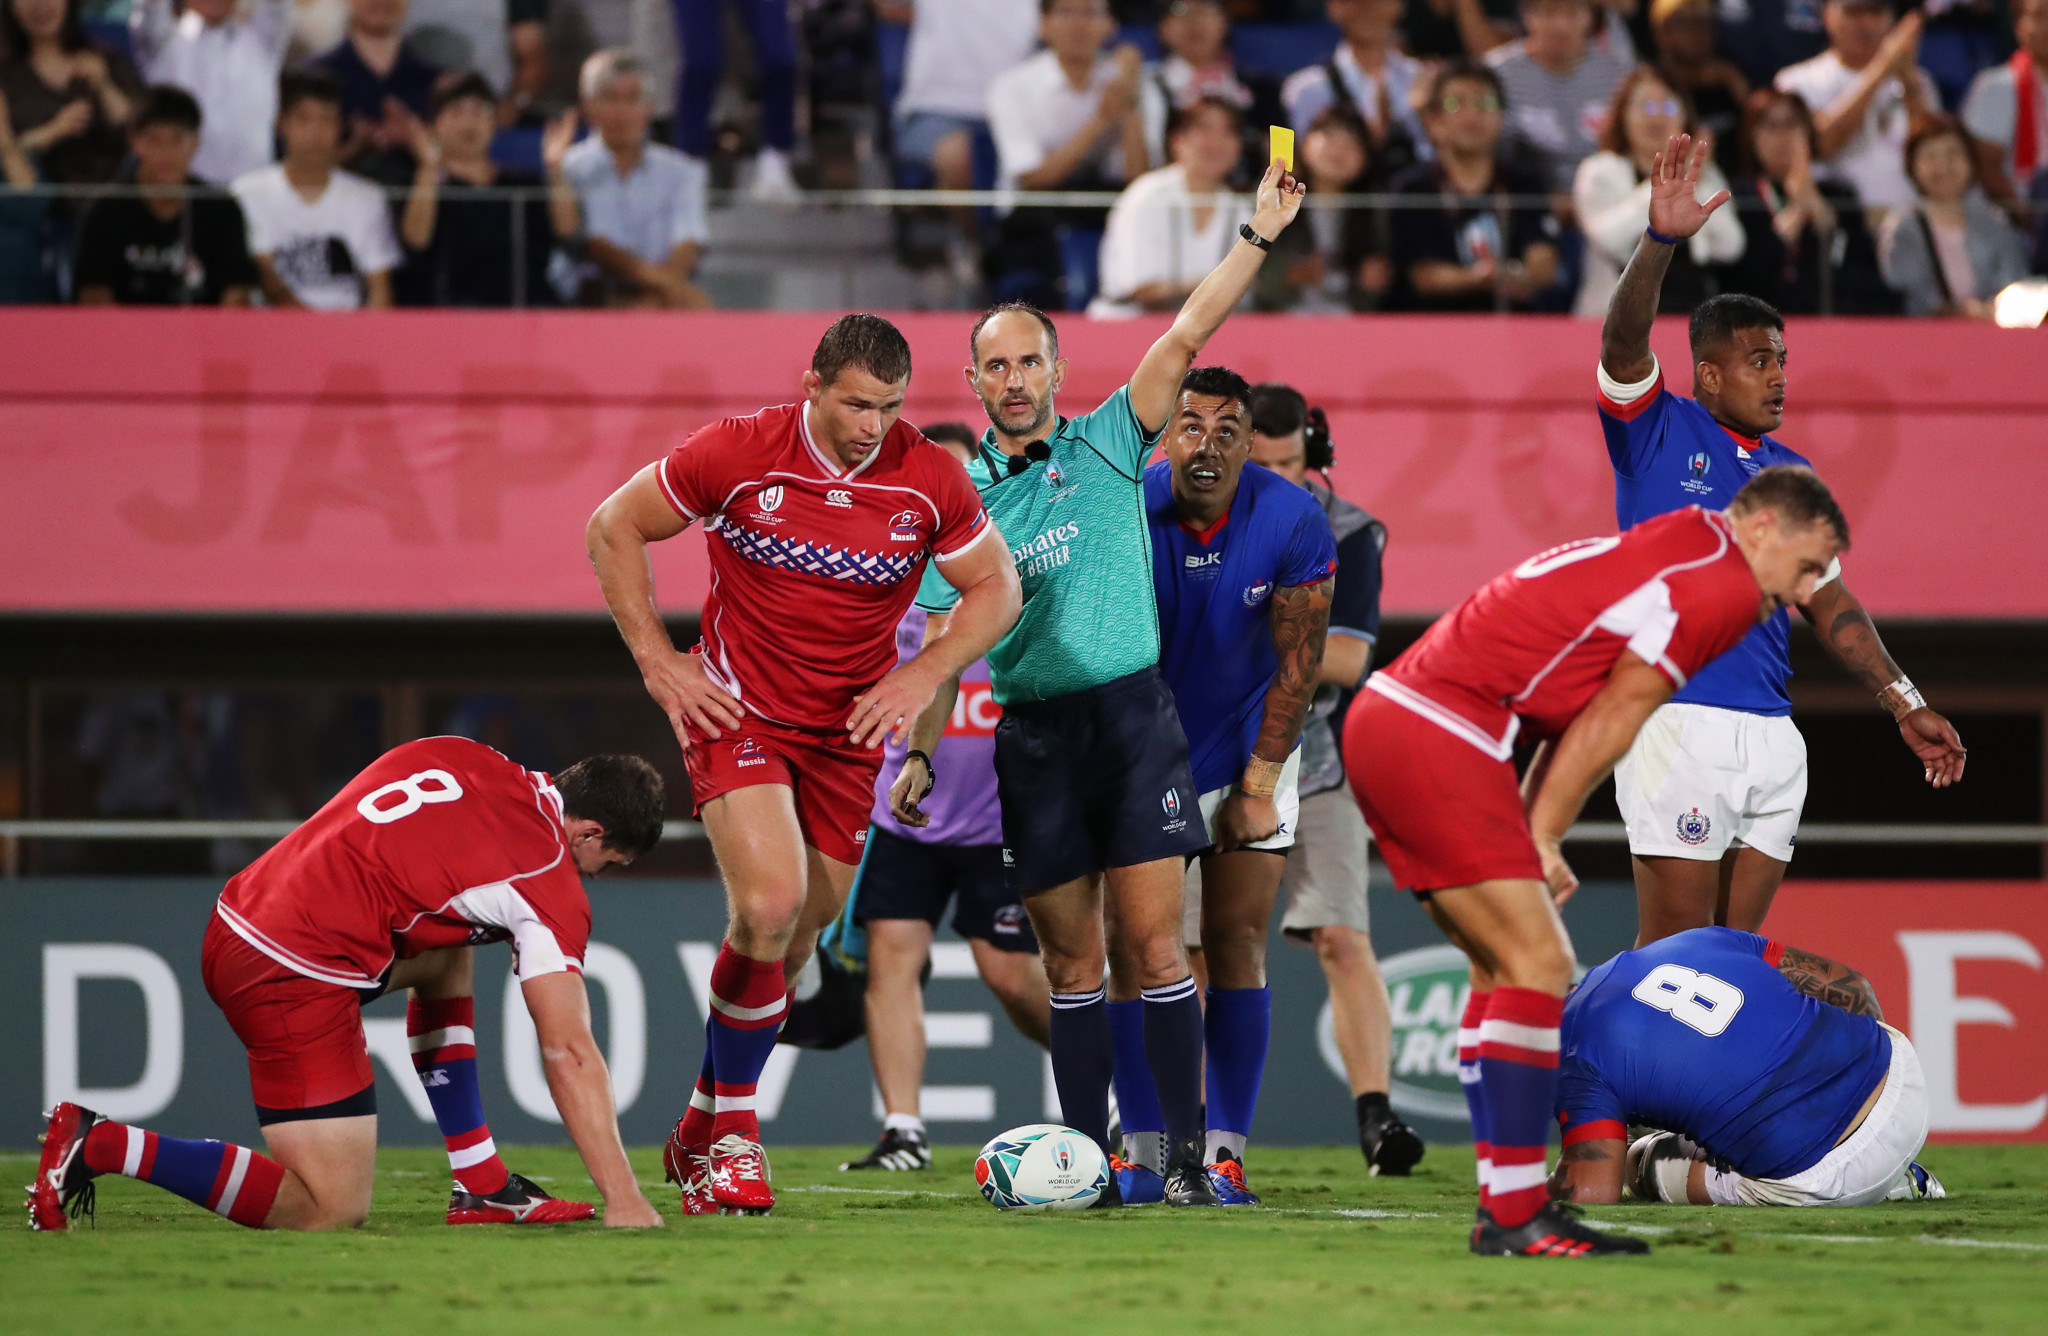 Roman Poite issues a yellow card to Russian Kirill Gotovtsev for a high tackle, while some experts said it should have been red ©Getty Images